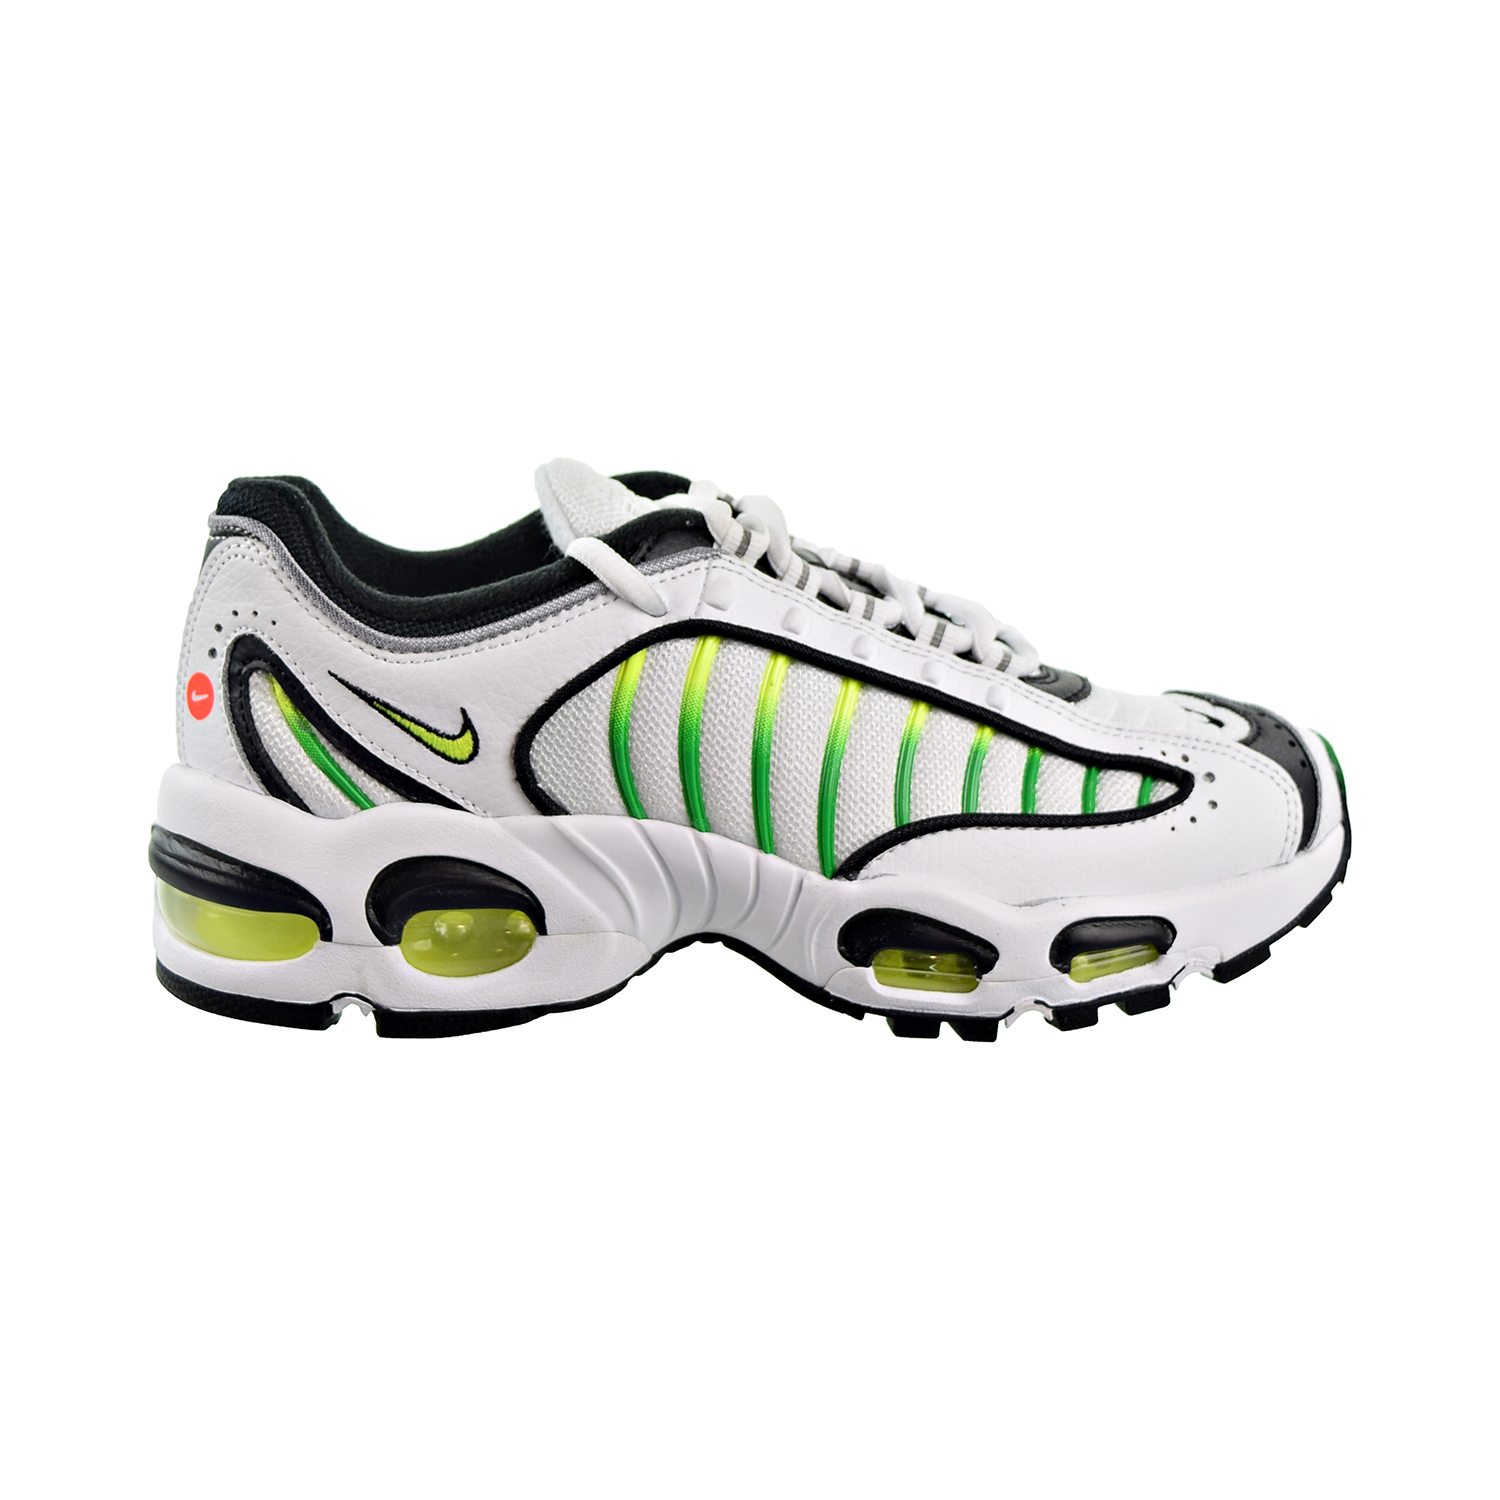 Details about Nike Air Max Tailwind 4 Big Kids Shoes White Volt Black BQ9810 100